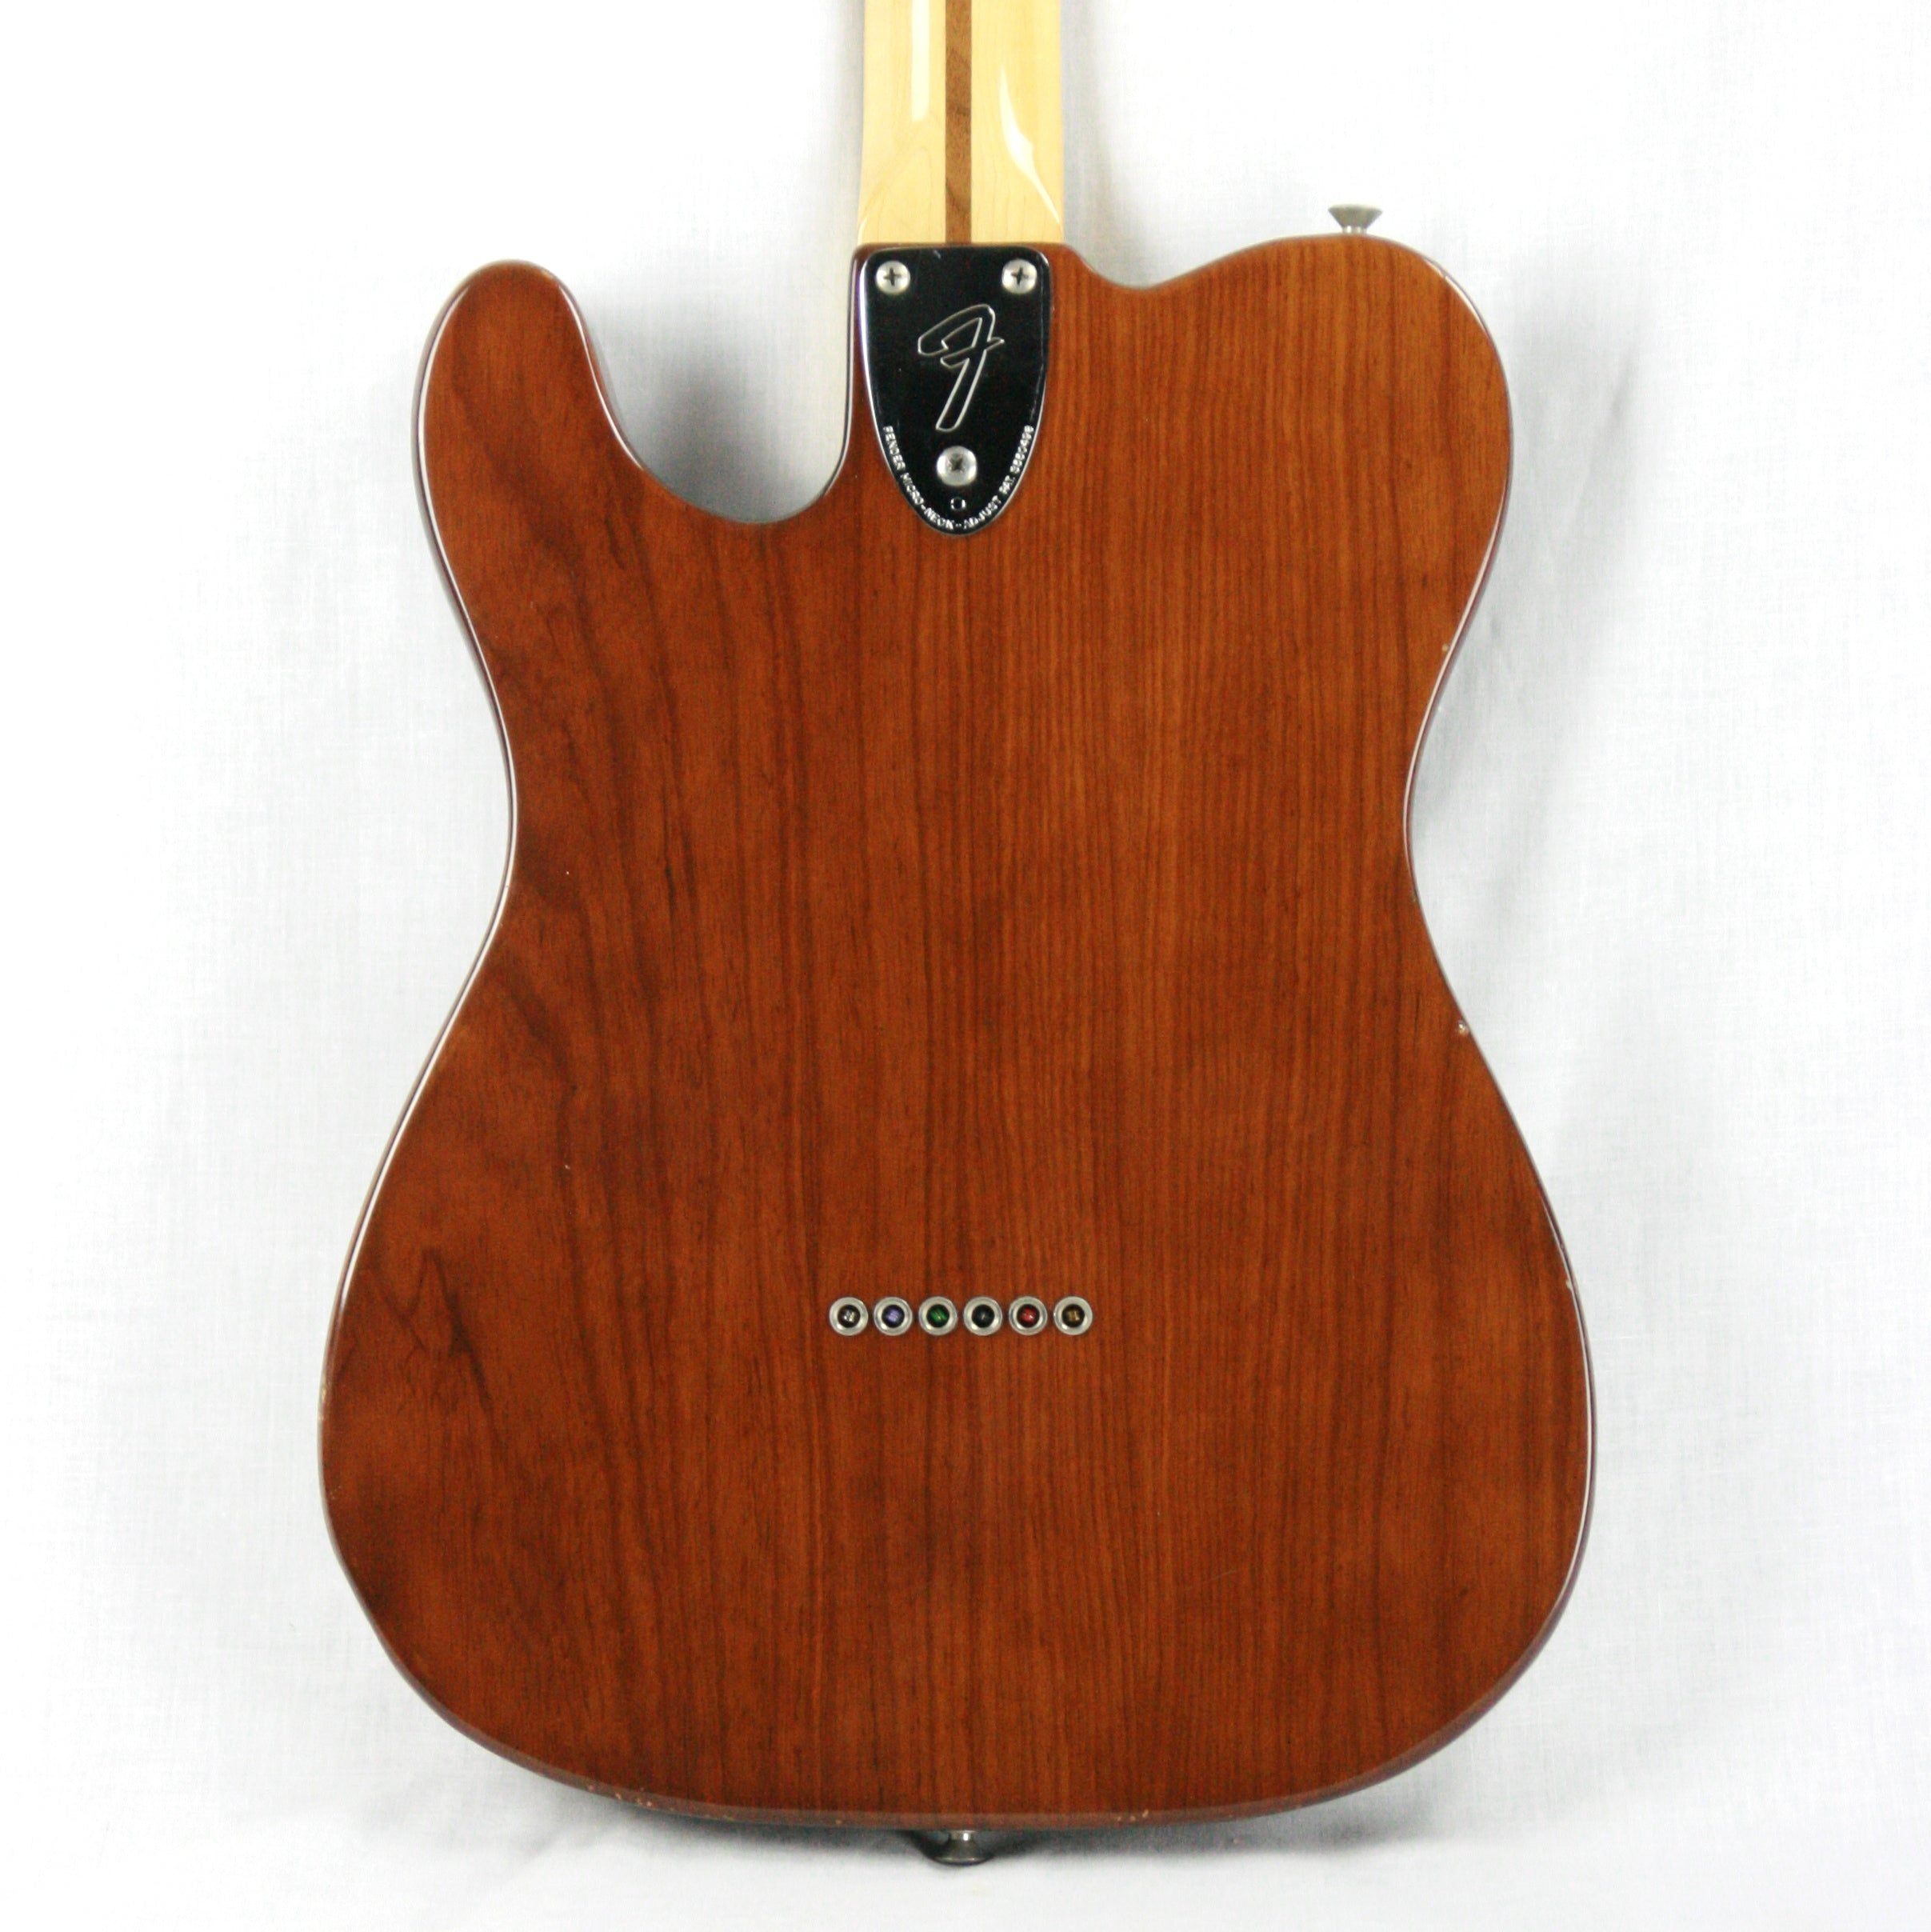 1979 Fender Telecaster Thinline Mocha Brown Finish w/ OHSC! 1970's Tele, Deluxe, Custom, Wide-Range Humbuckers!